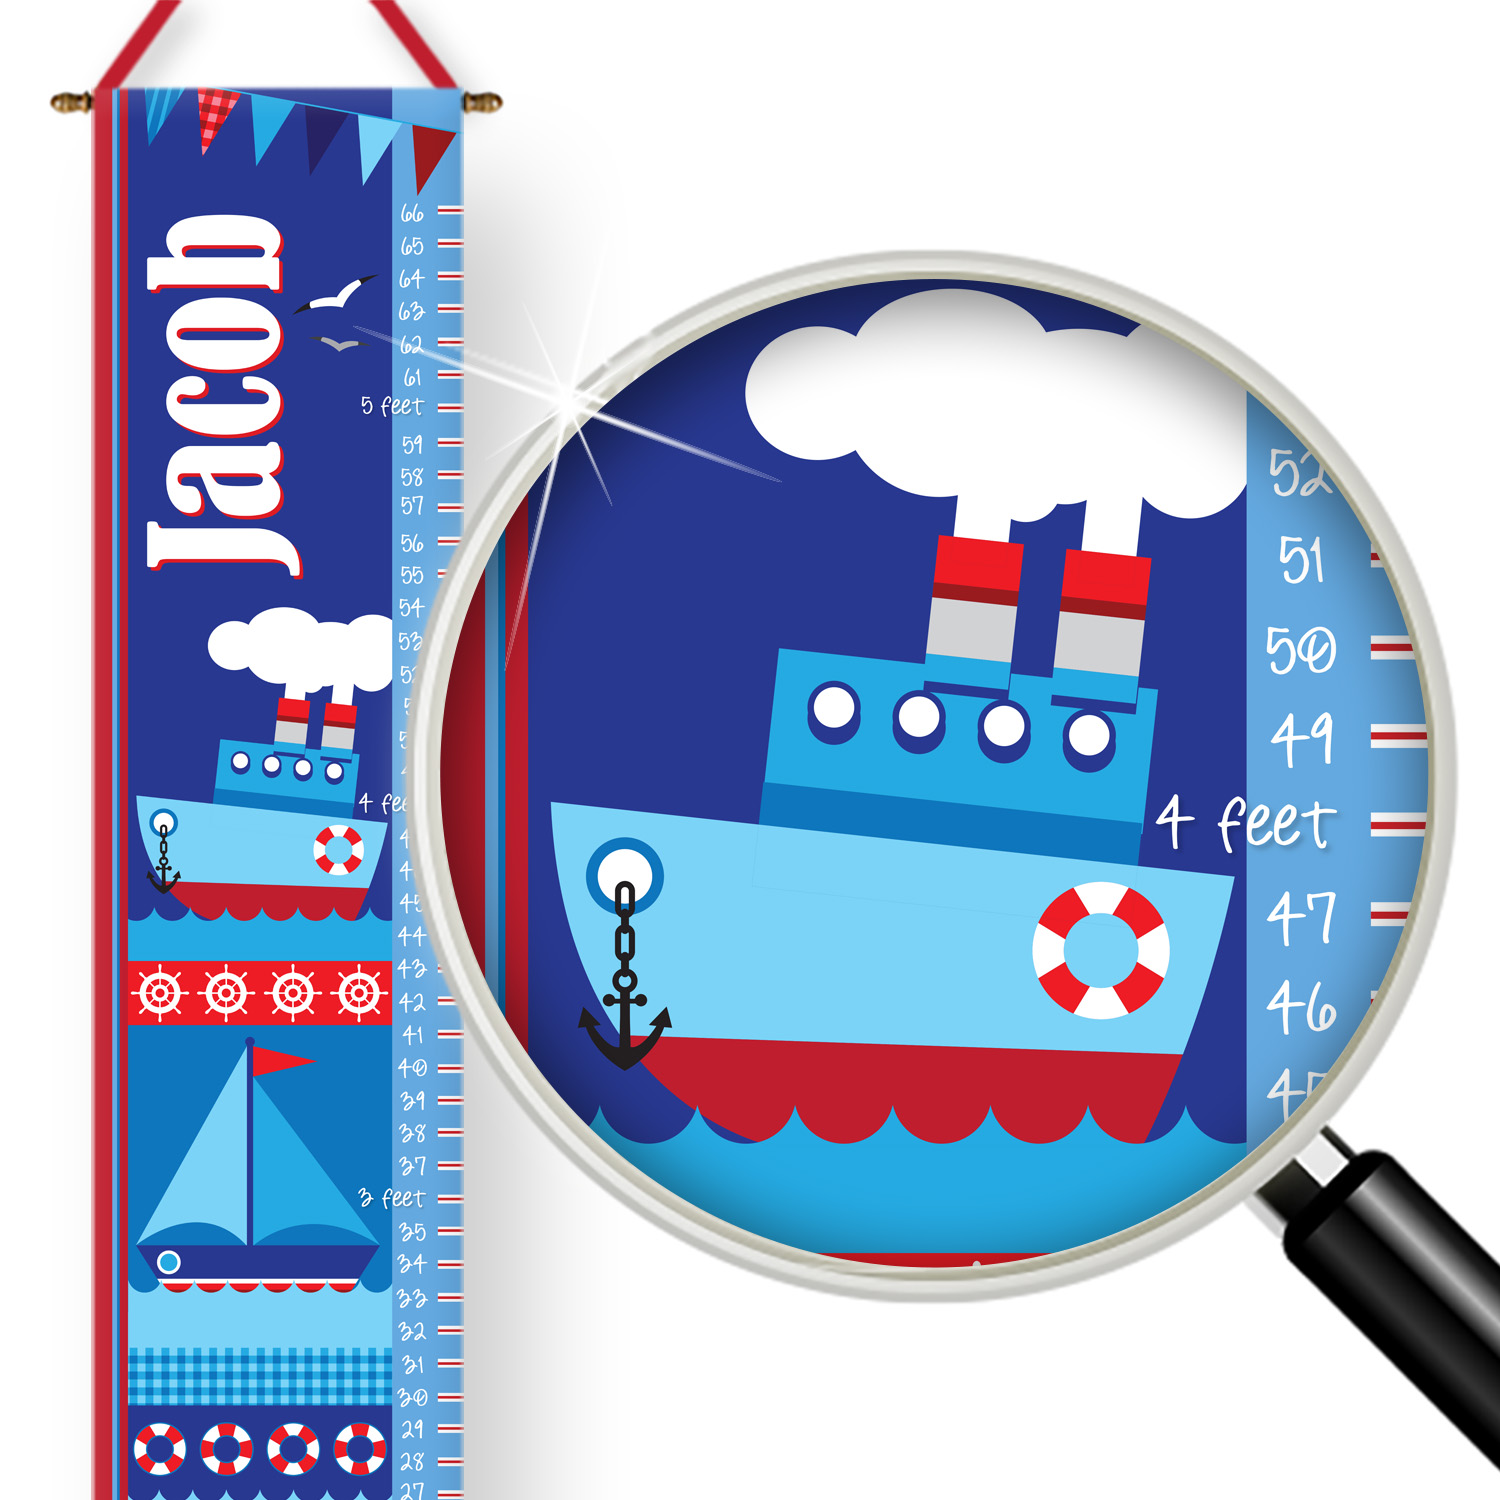 PKGC00008-OceanAdventures Ocean Adventures Personalized Kids Growth Chart by Pickleberry Kids